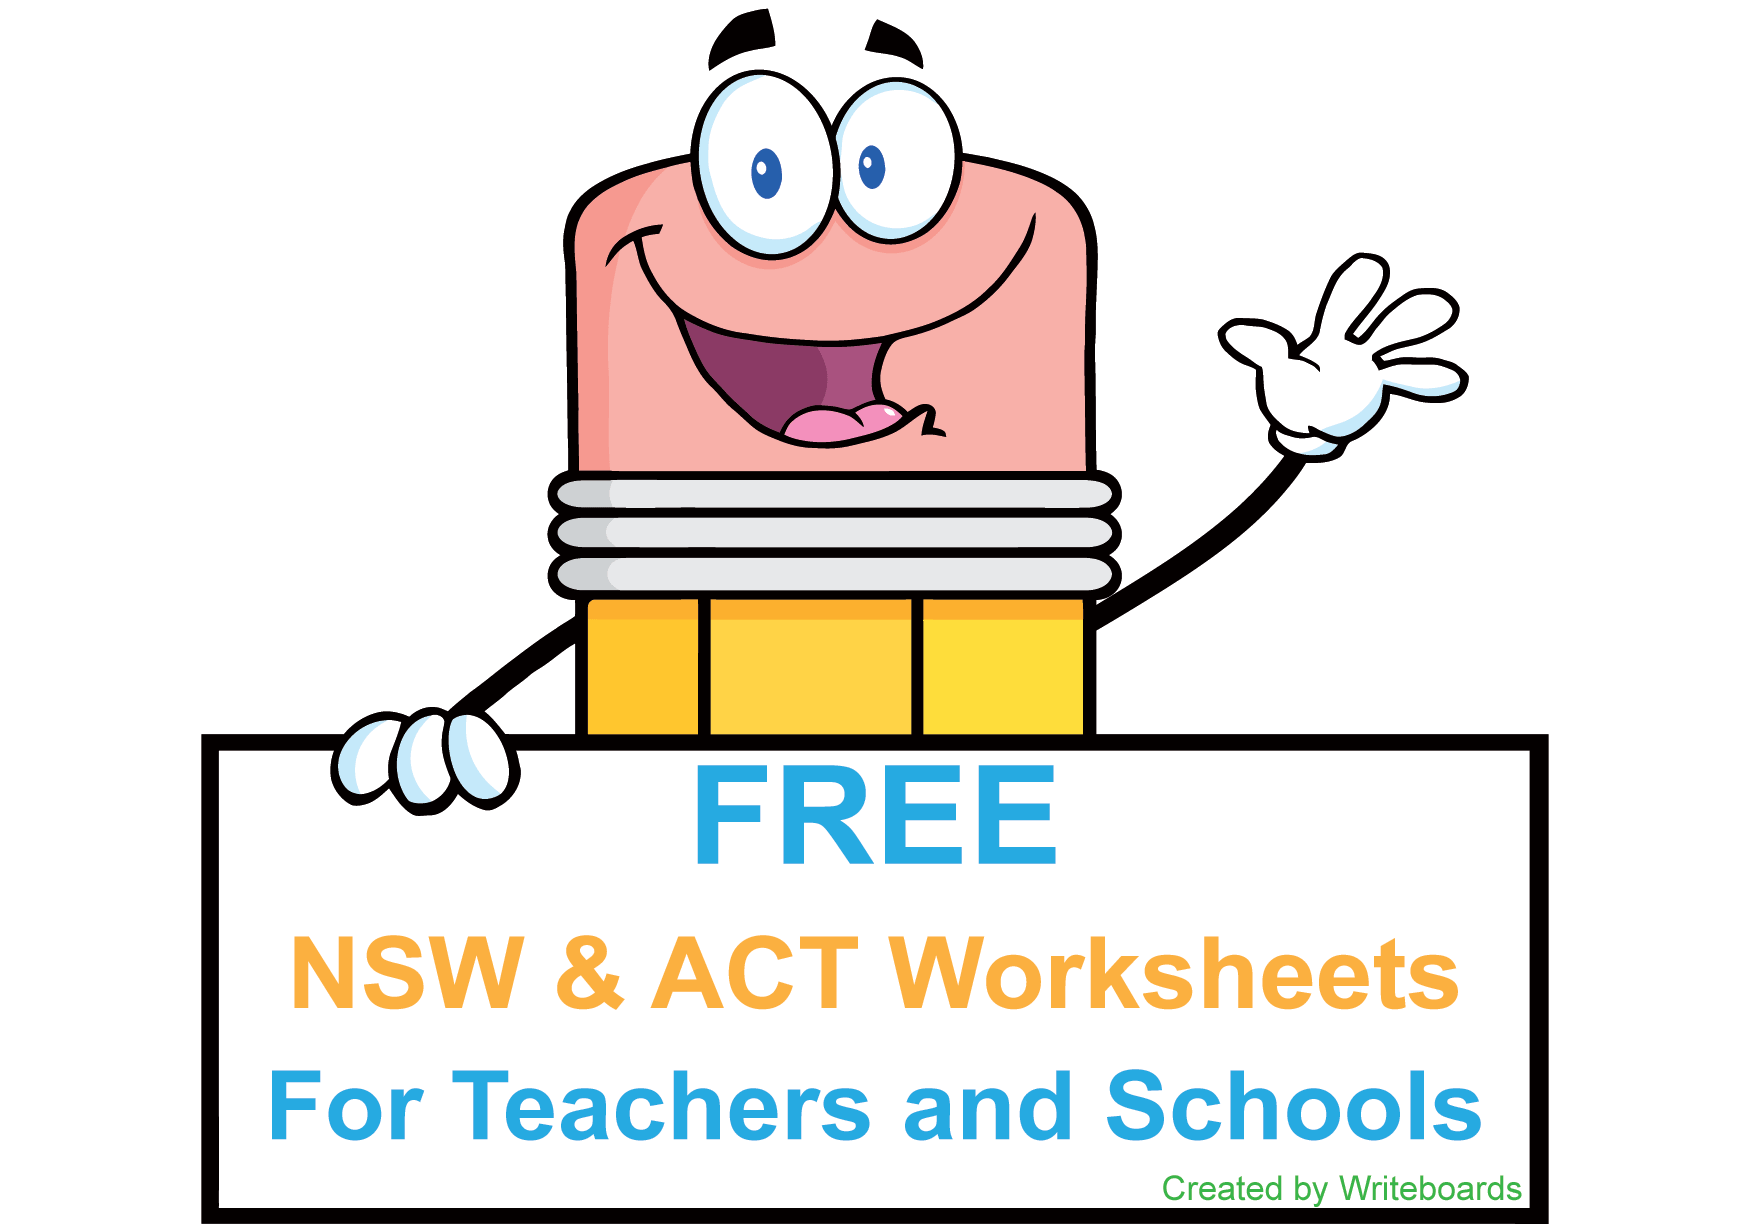 Free NSW Foundation Font Handwriting Worksheets for Teachers ...